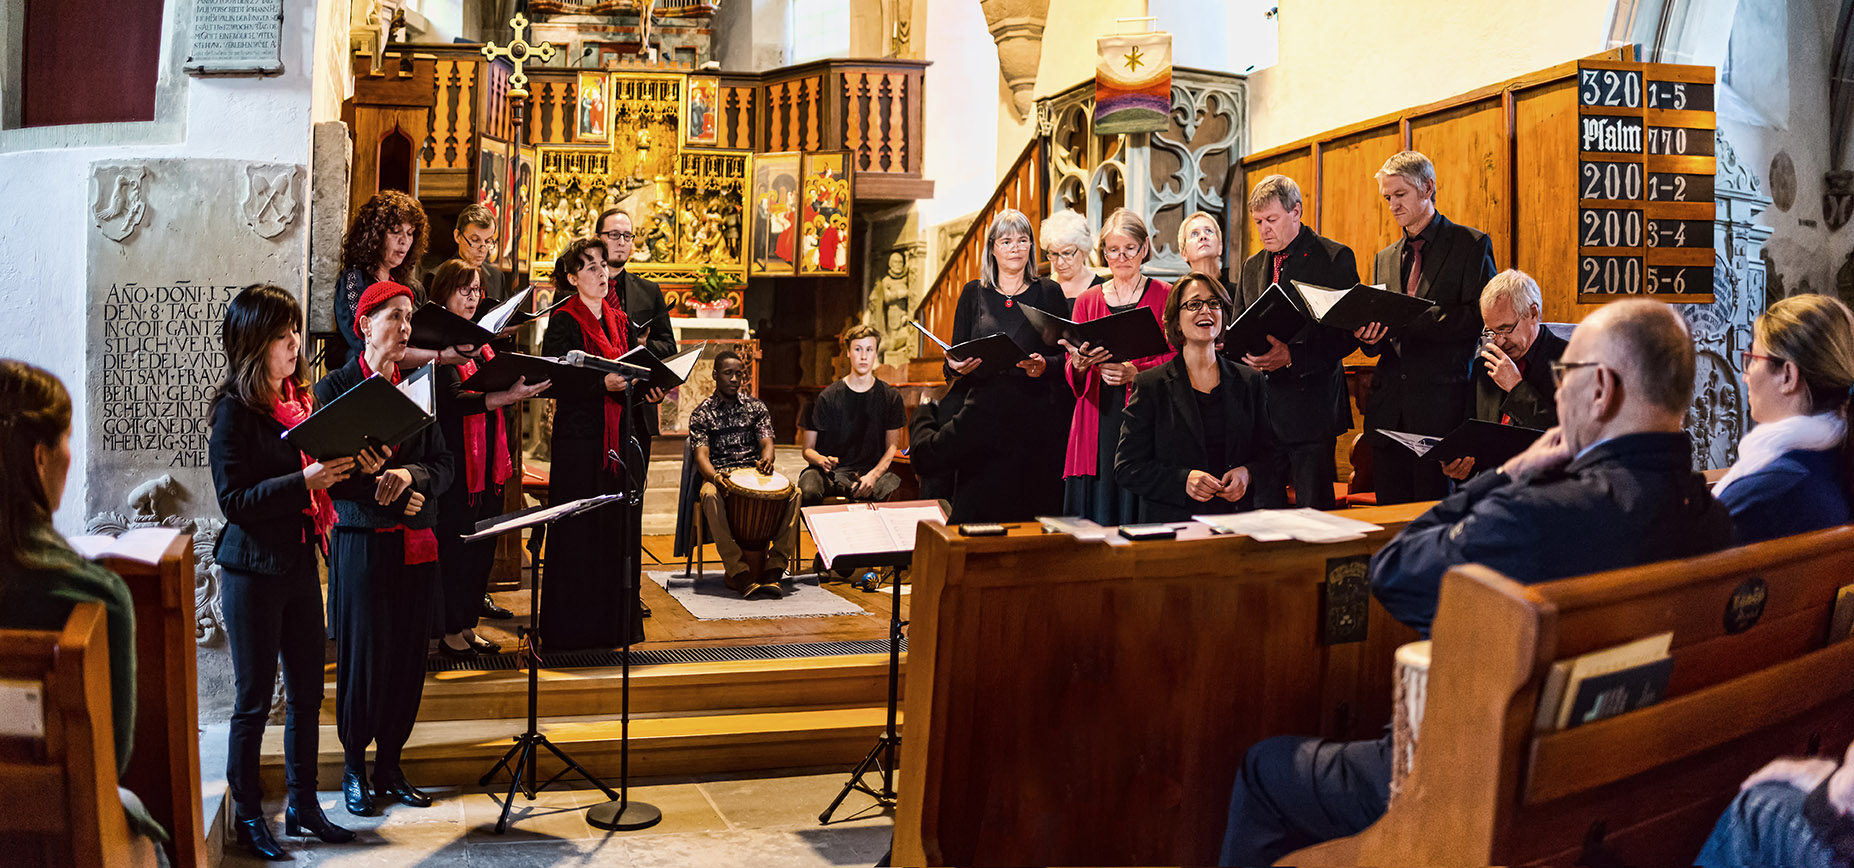 Jubilate in der Urbanskirche